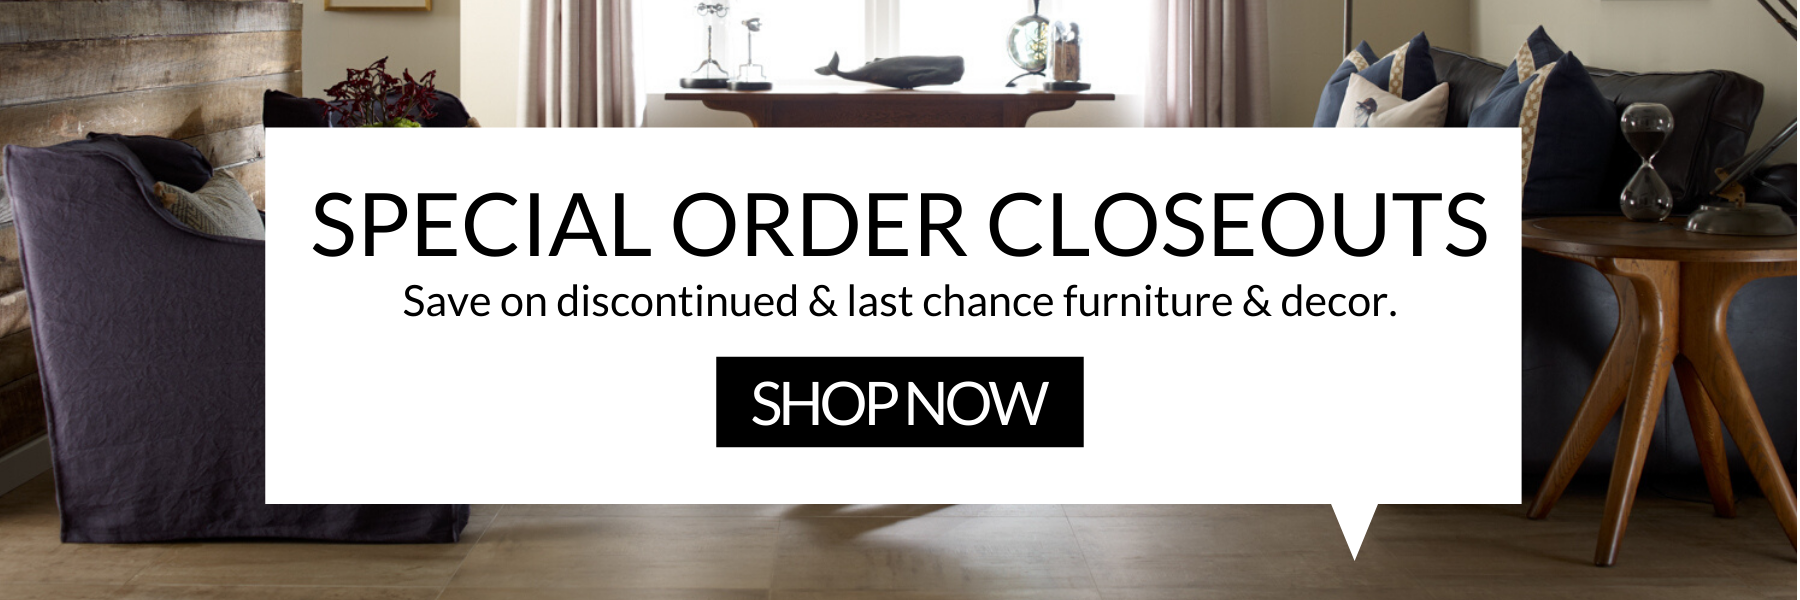 Special Order Discontinued Furniture Sale